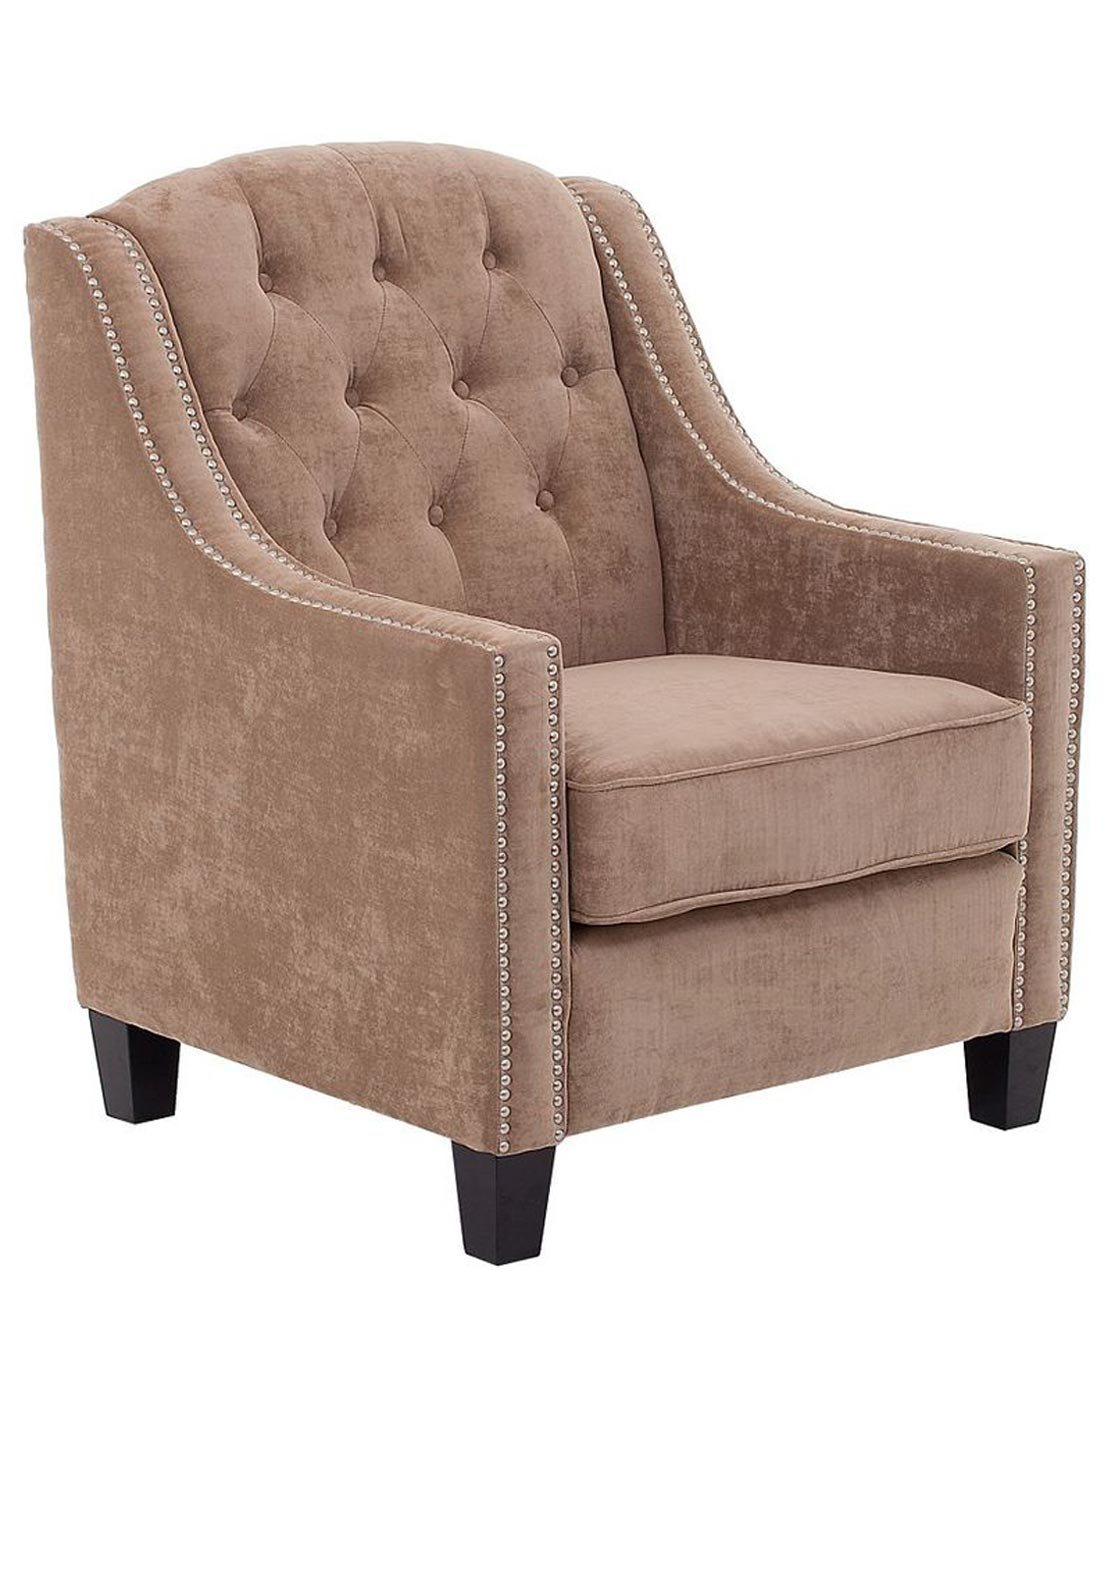 Mindy Brownes Cruz Armchair, Beige